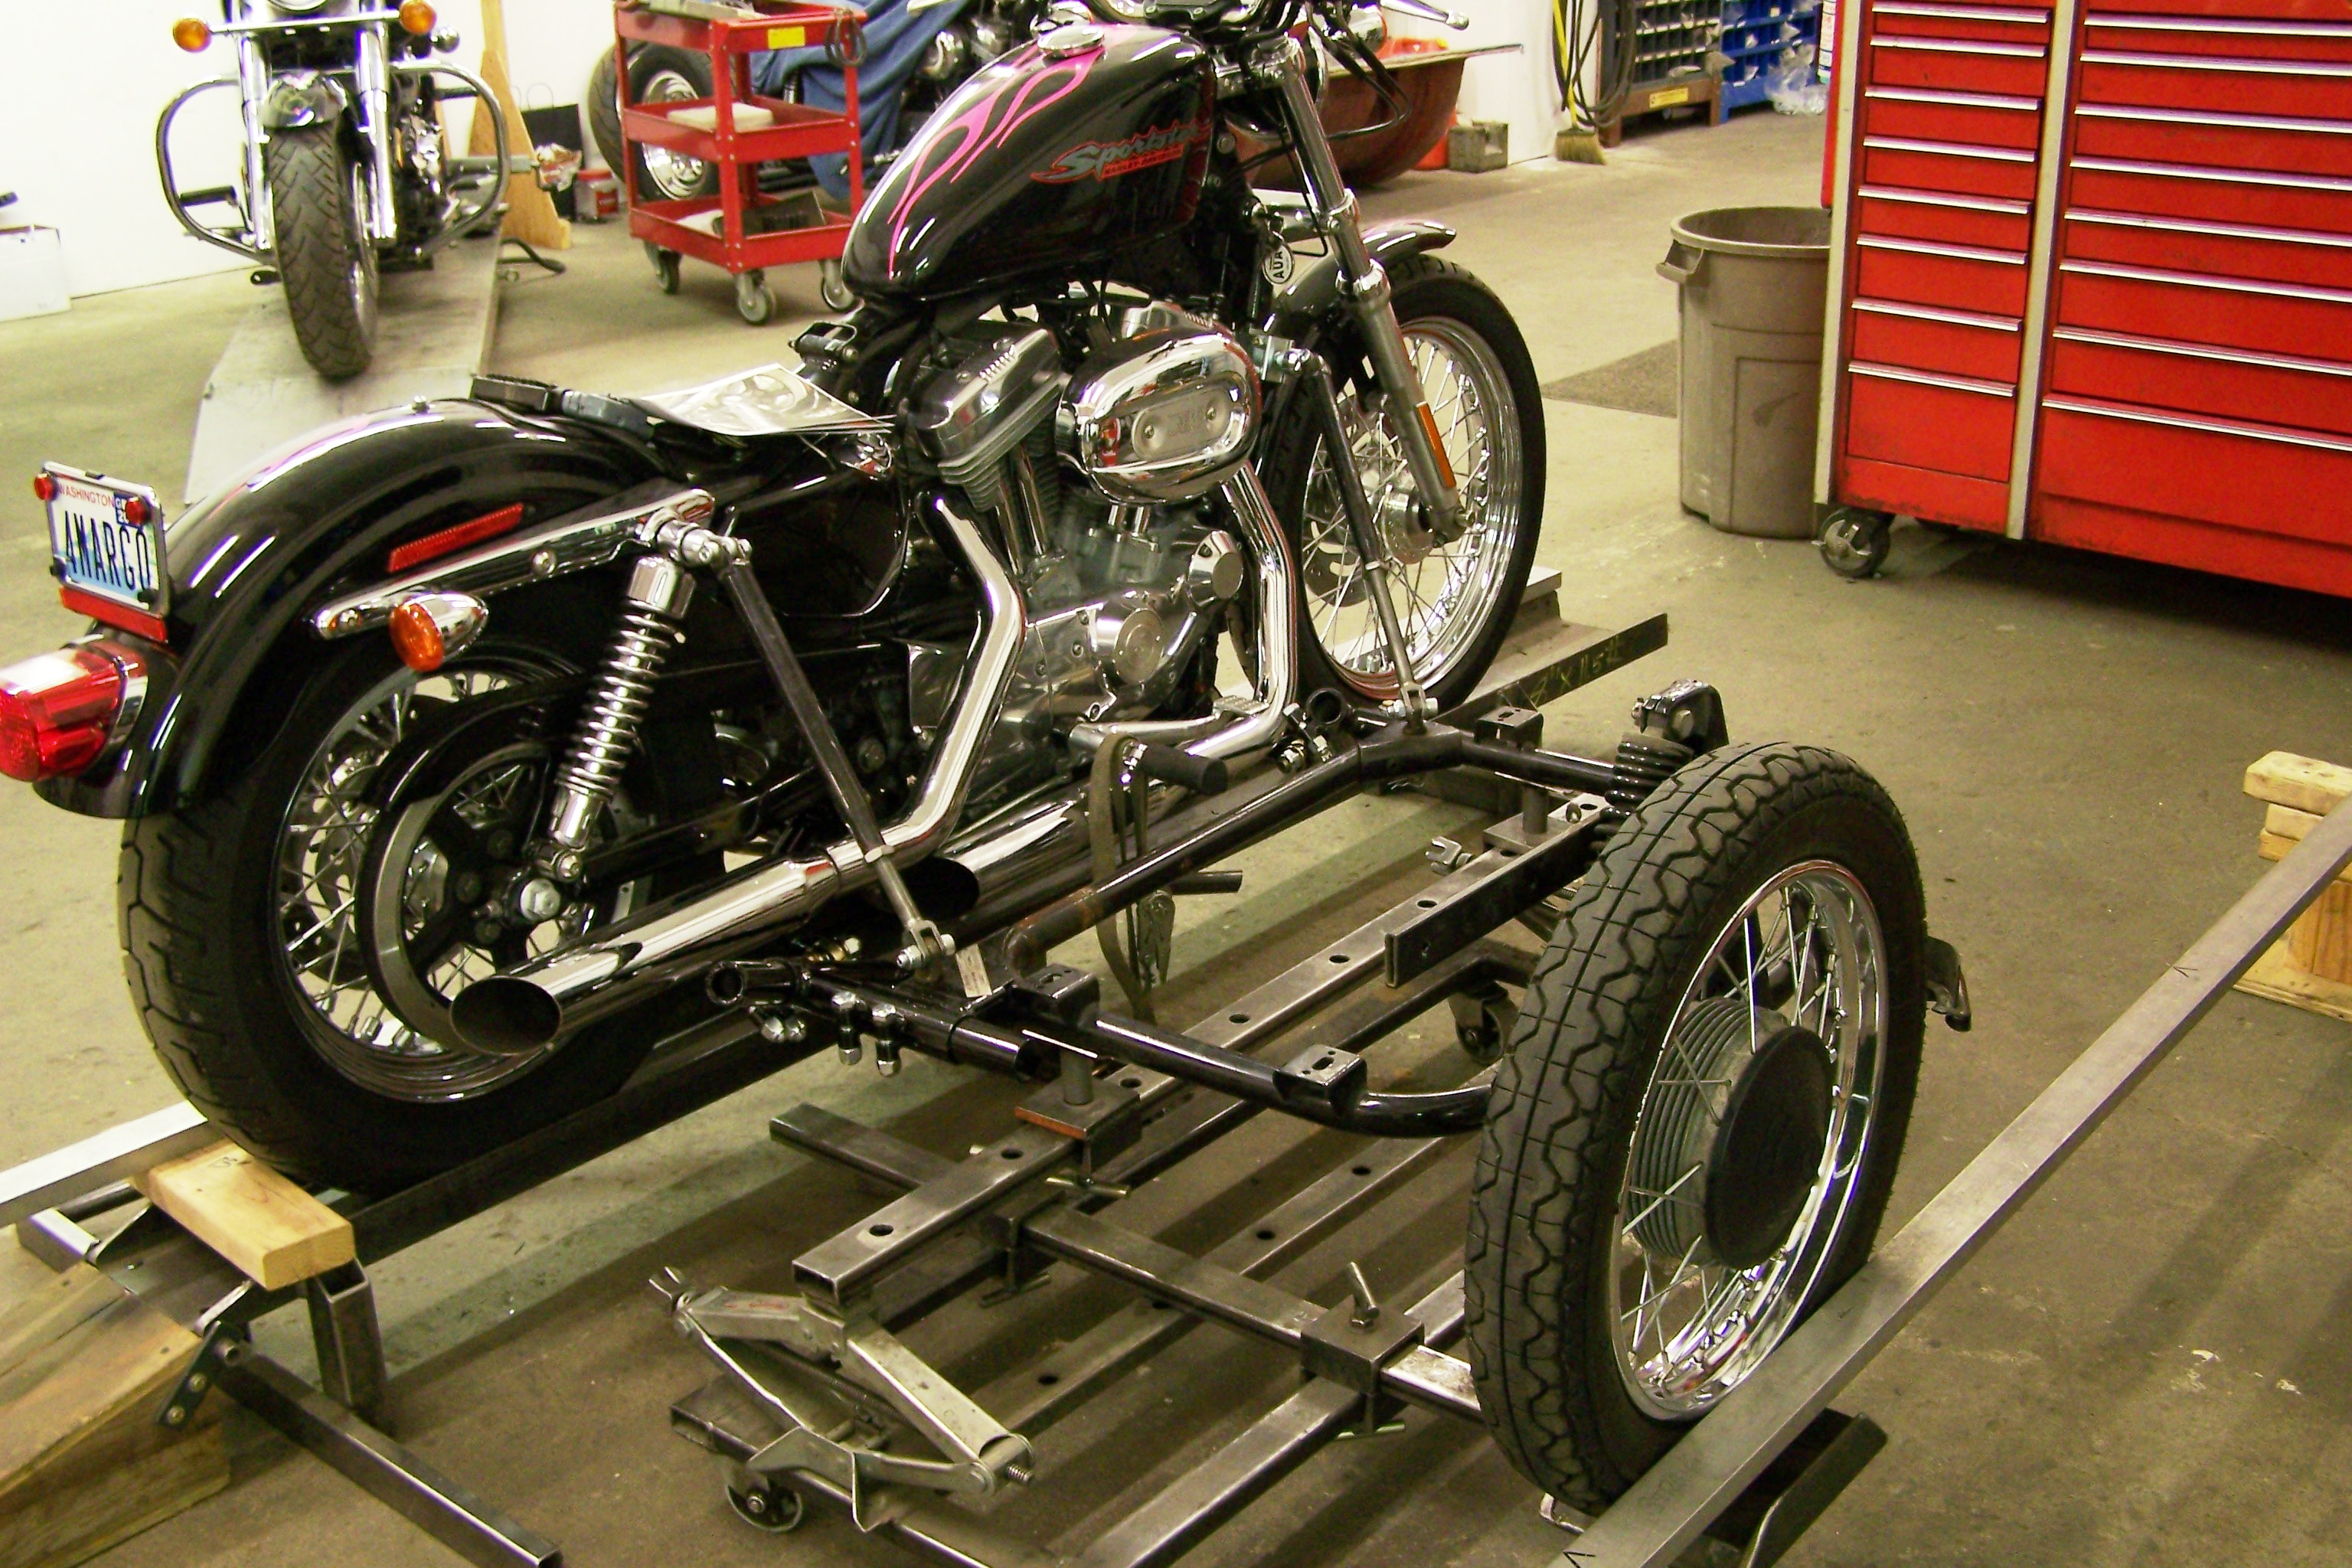 Sidecar Mounting Dmc Sidecars Wiring Diagram For A Rigid Frame With Shovelhead Engine Solved I